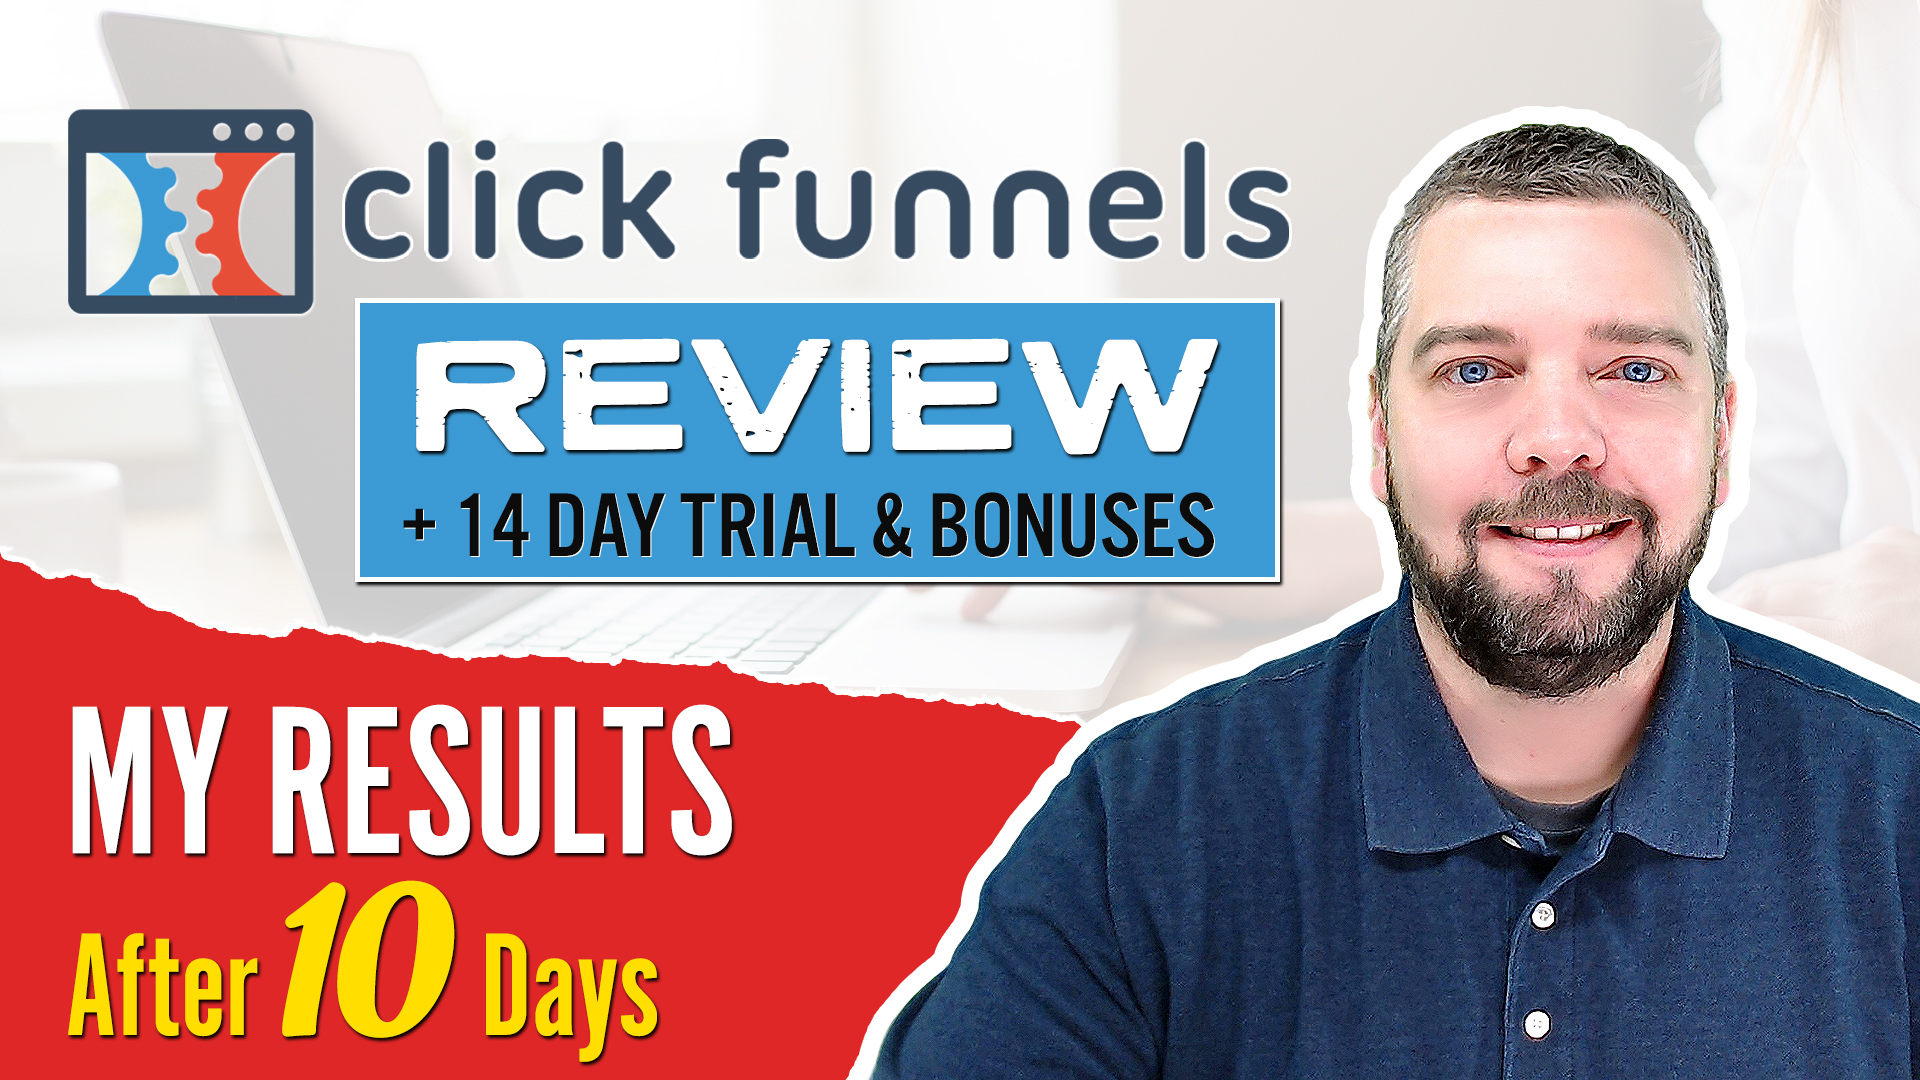 Clickfunnels Review - What is Clickfunnels 15